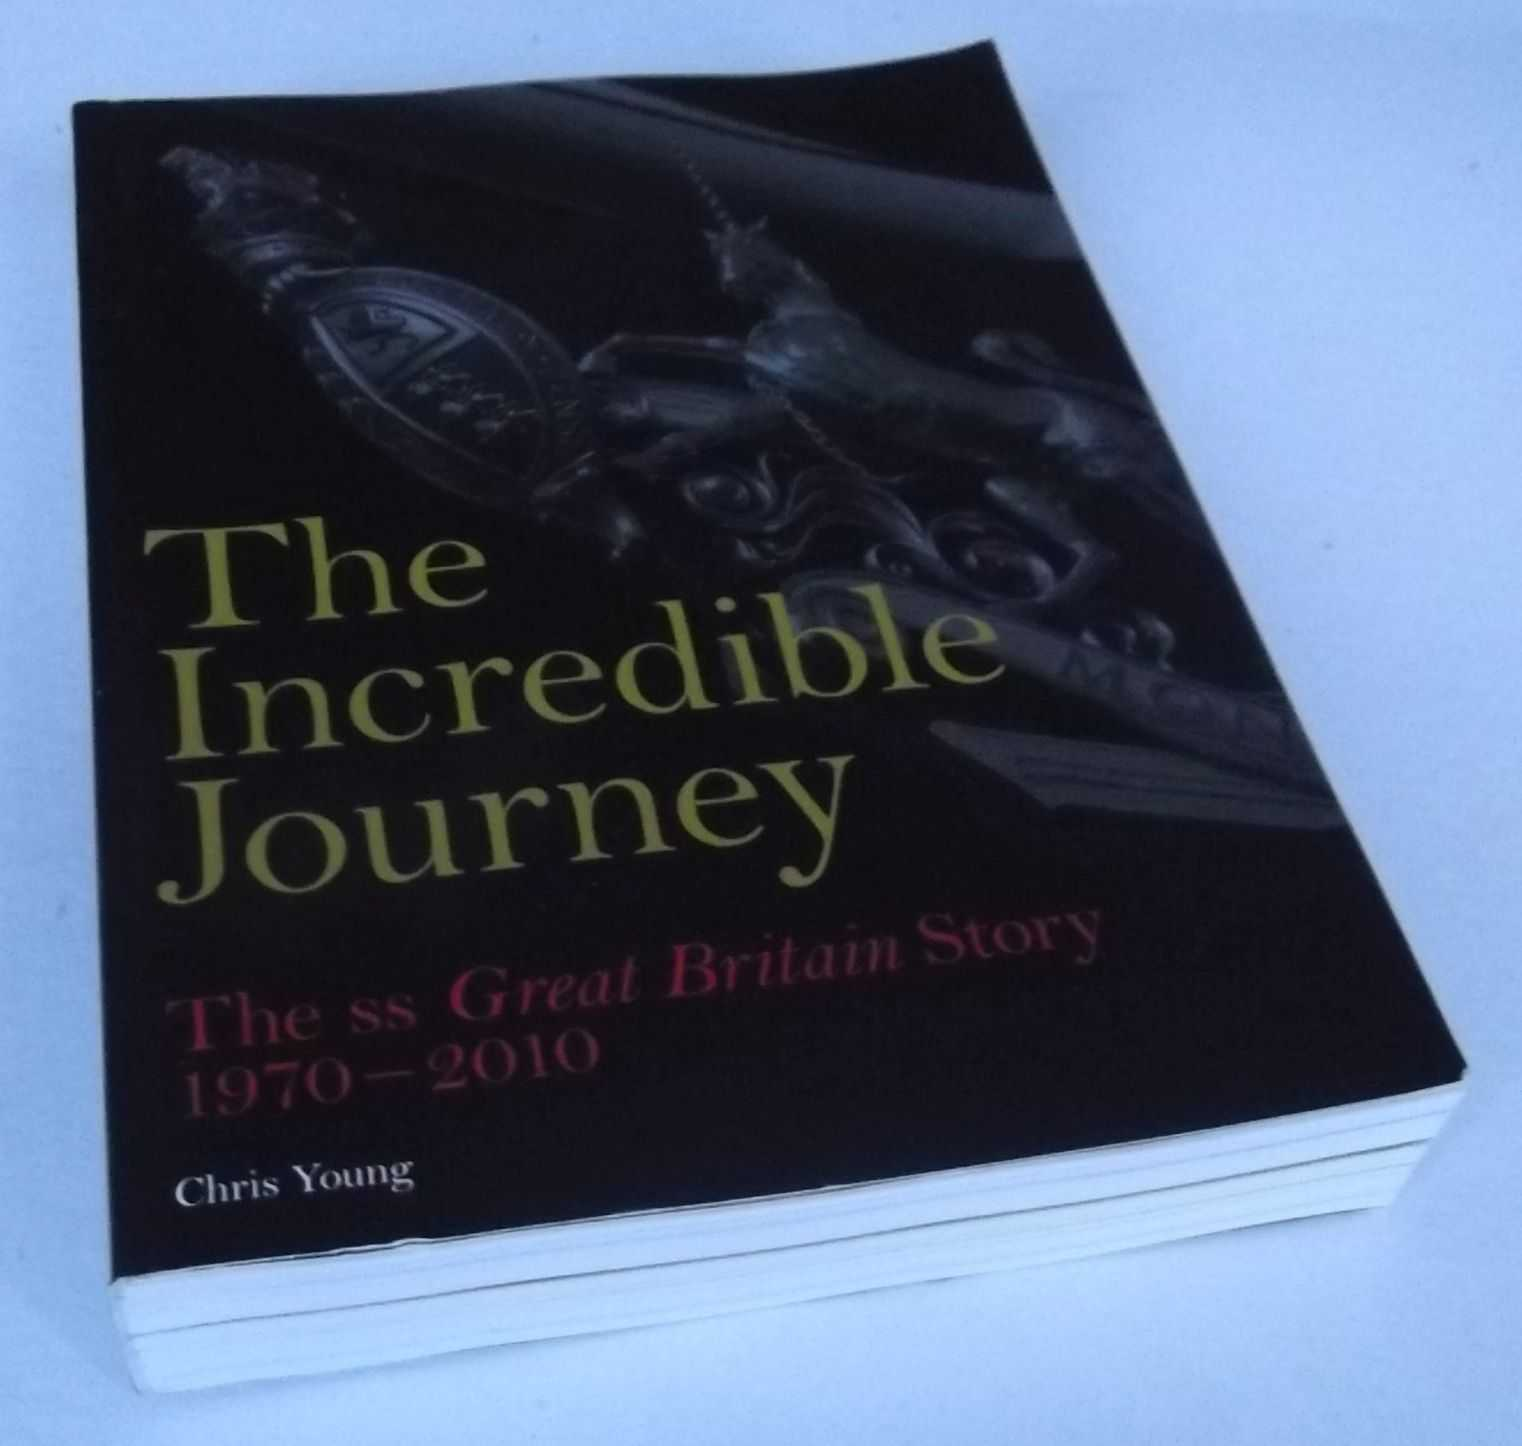 CHRIS YOUNG - The Incredible Journey: The SS Great Britain Story 1970-2010